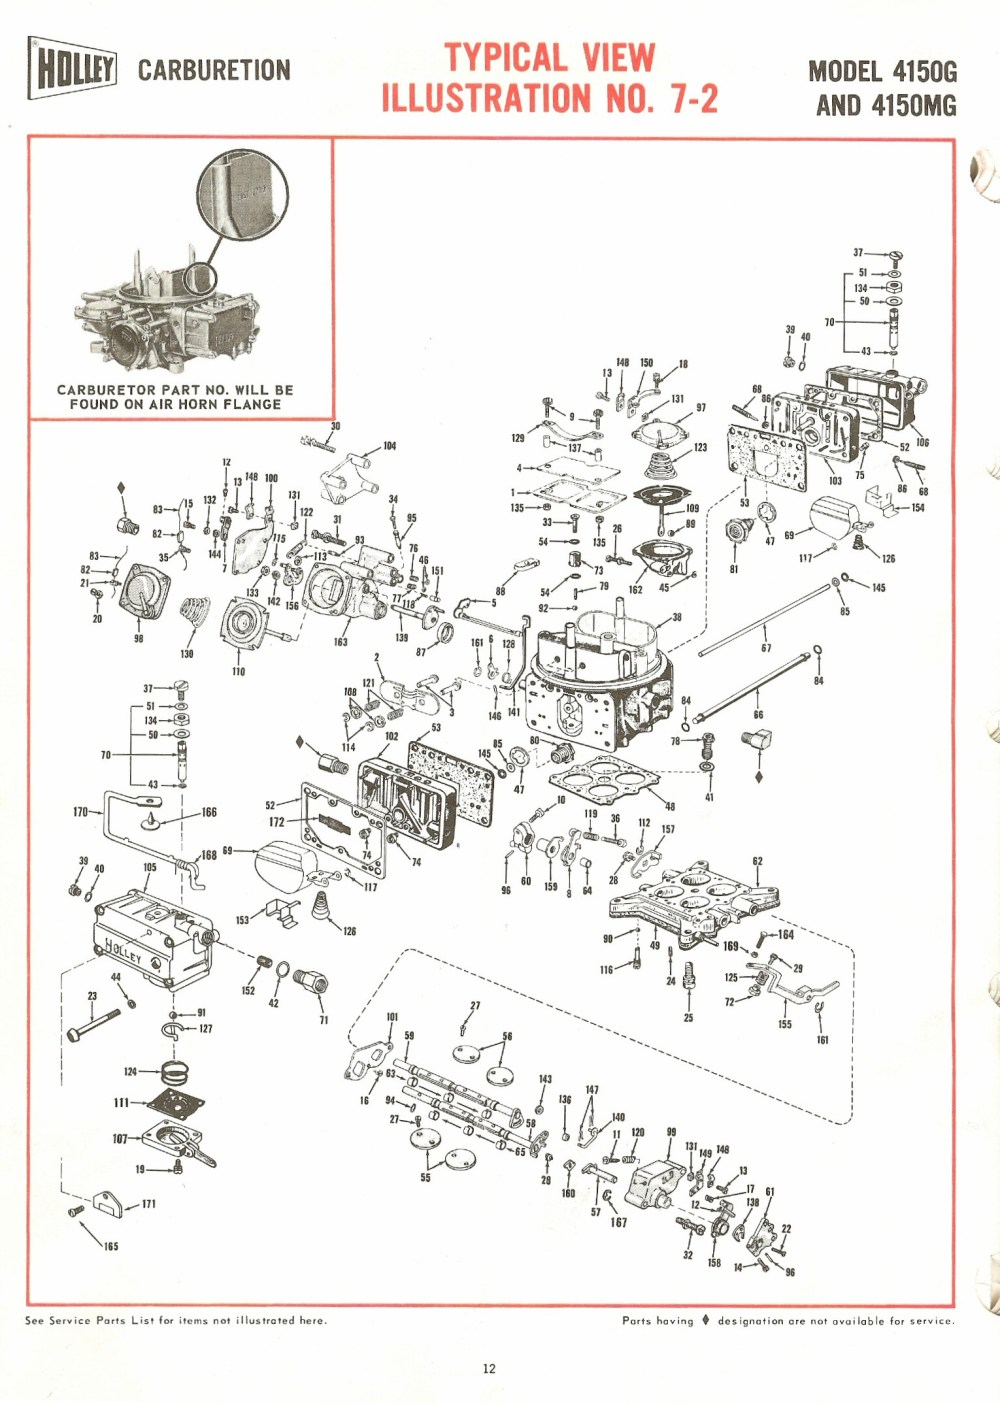 medium resolution of holley carburetor diagram wiring diagram for you holley carburetor vacuum diagram holley 4150g and 4150mg exploded